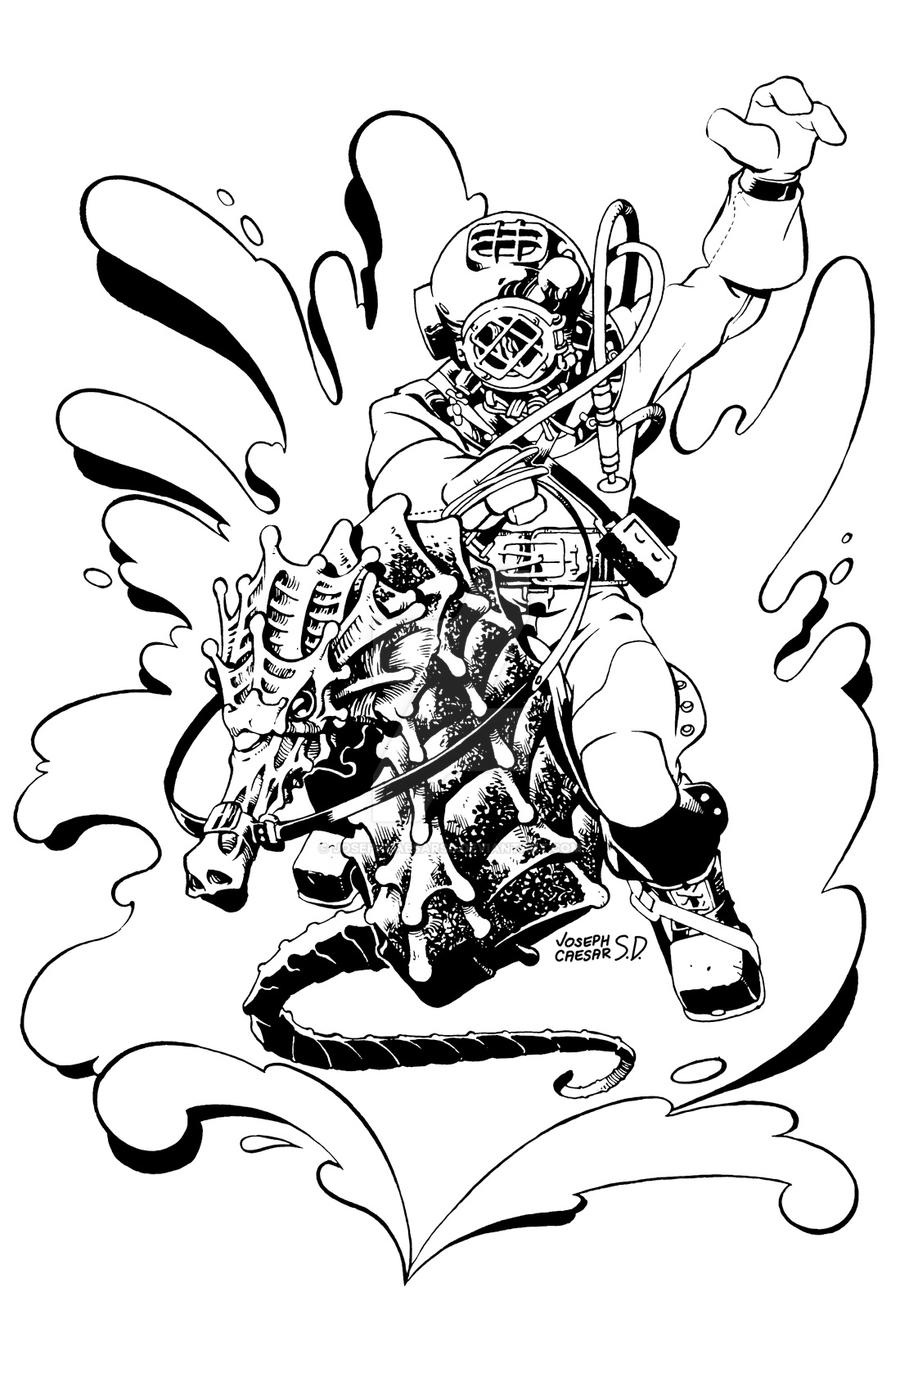 Deep sea diver rodeo by josephcaesarsd on deviantart for Deep sea diver coloring page